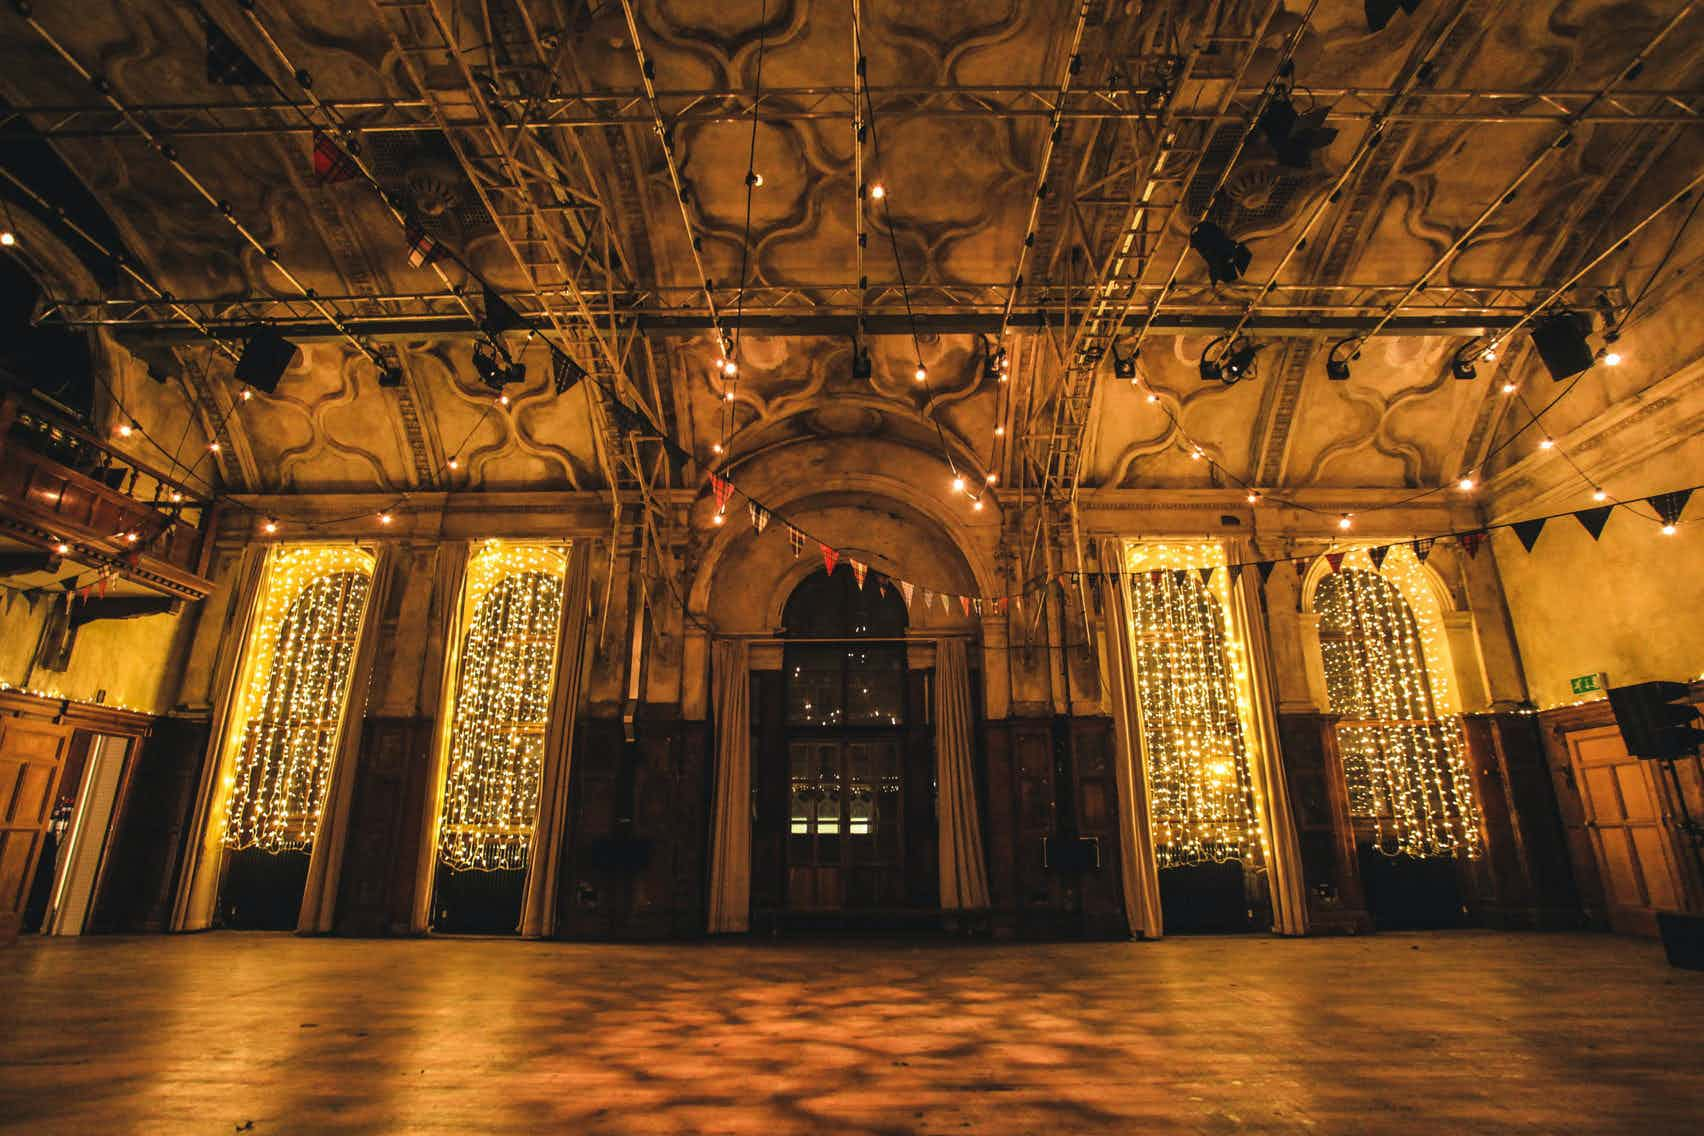 The Council Chamber, Battersea Arts Centre